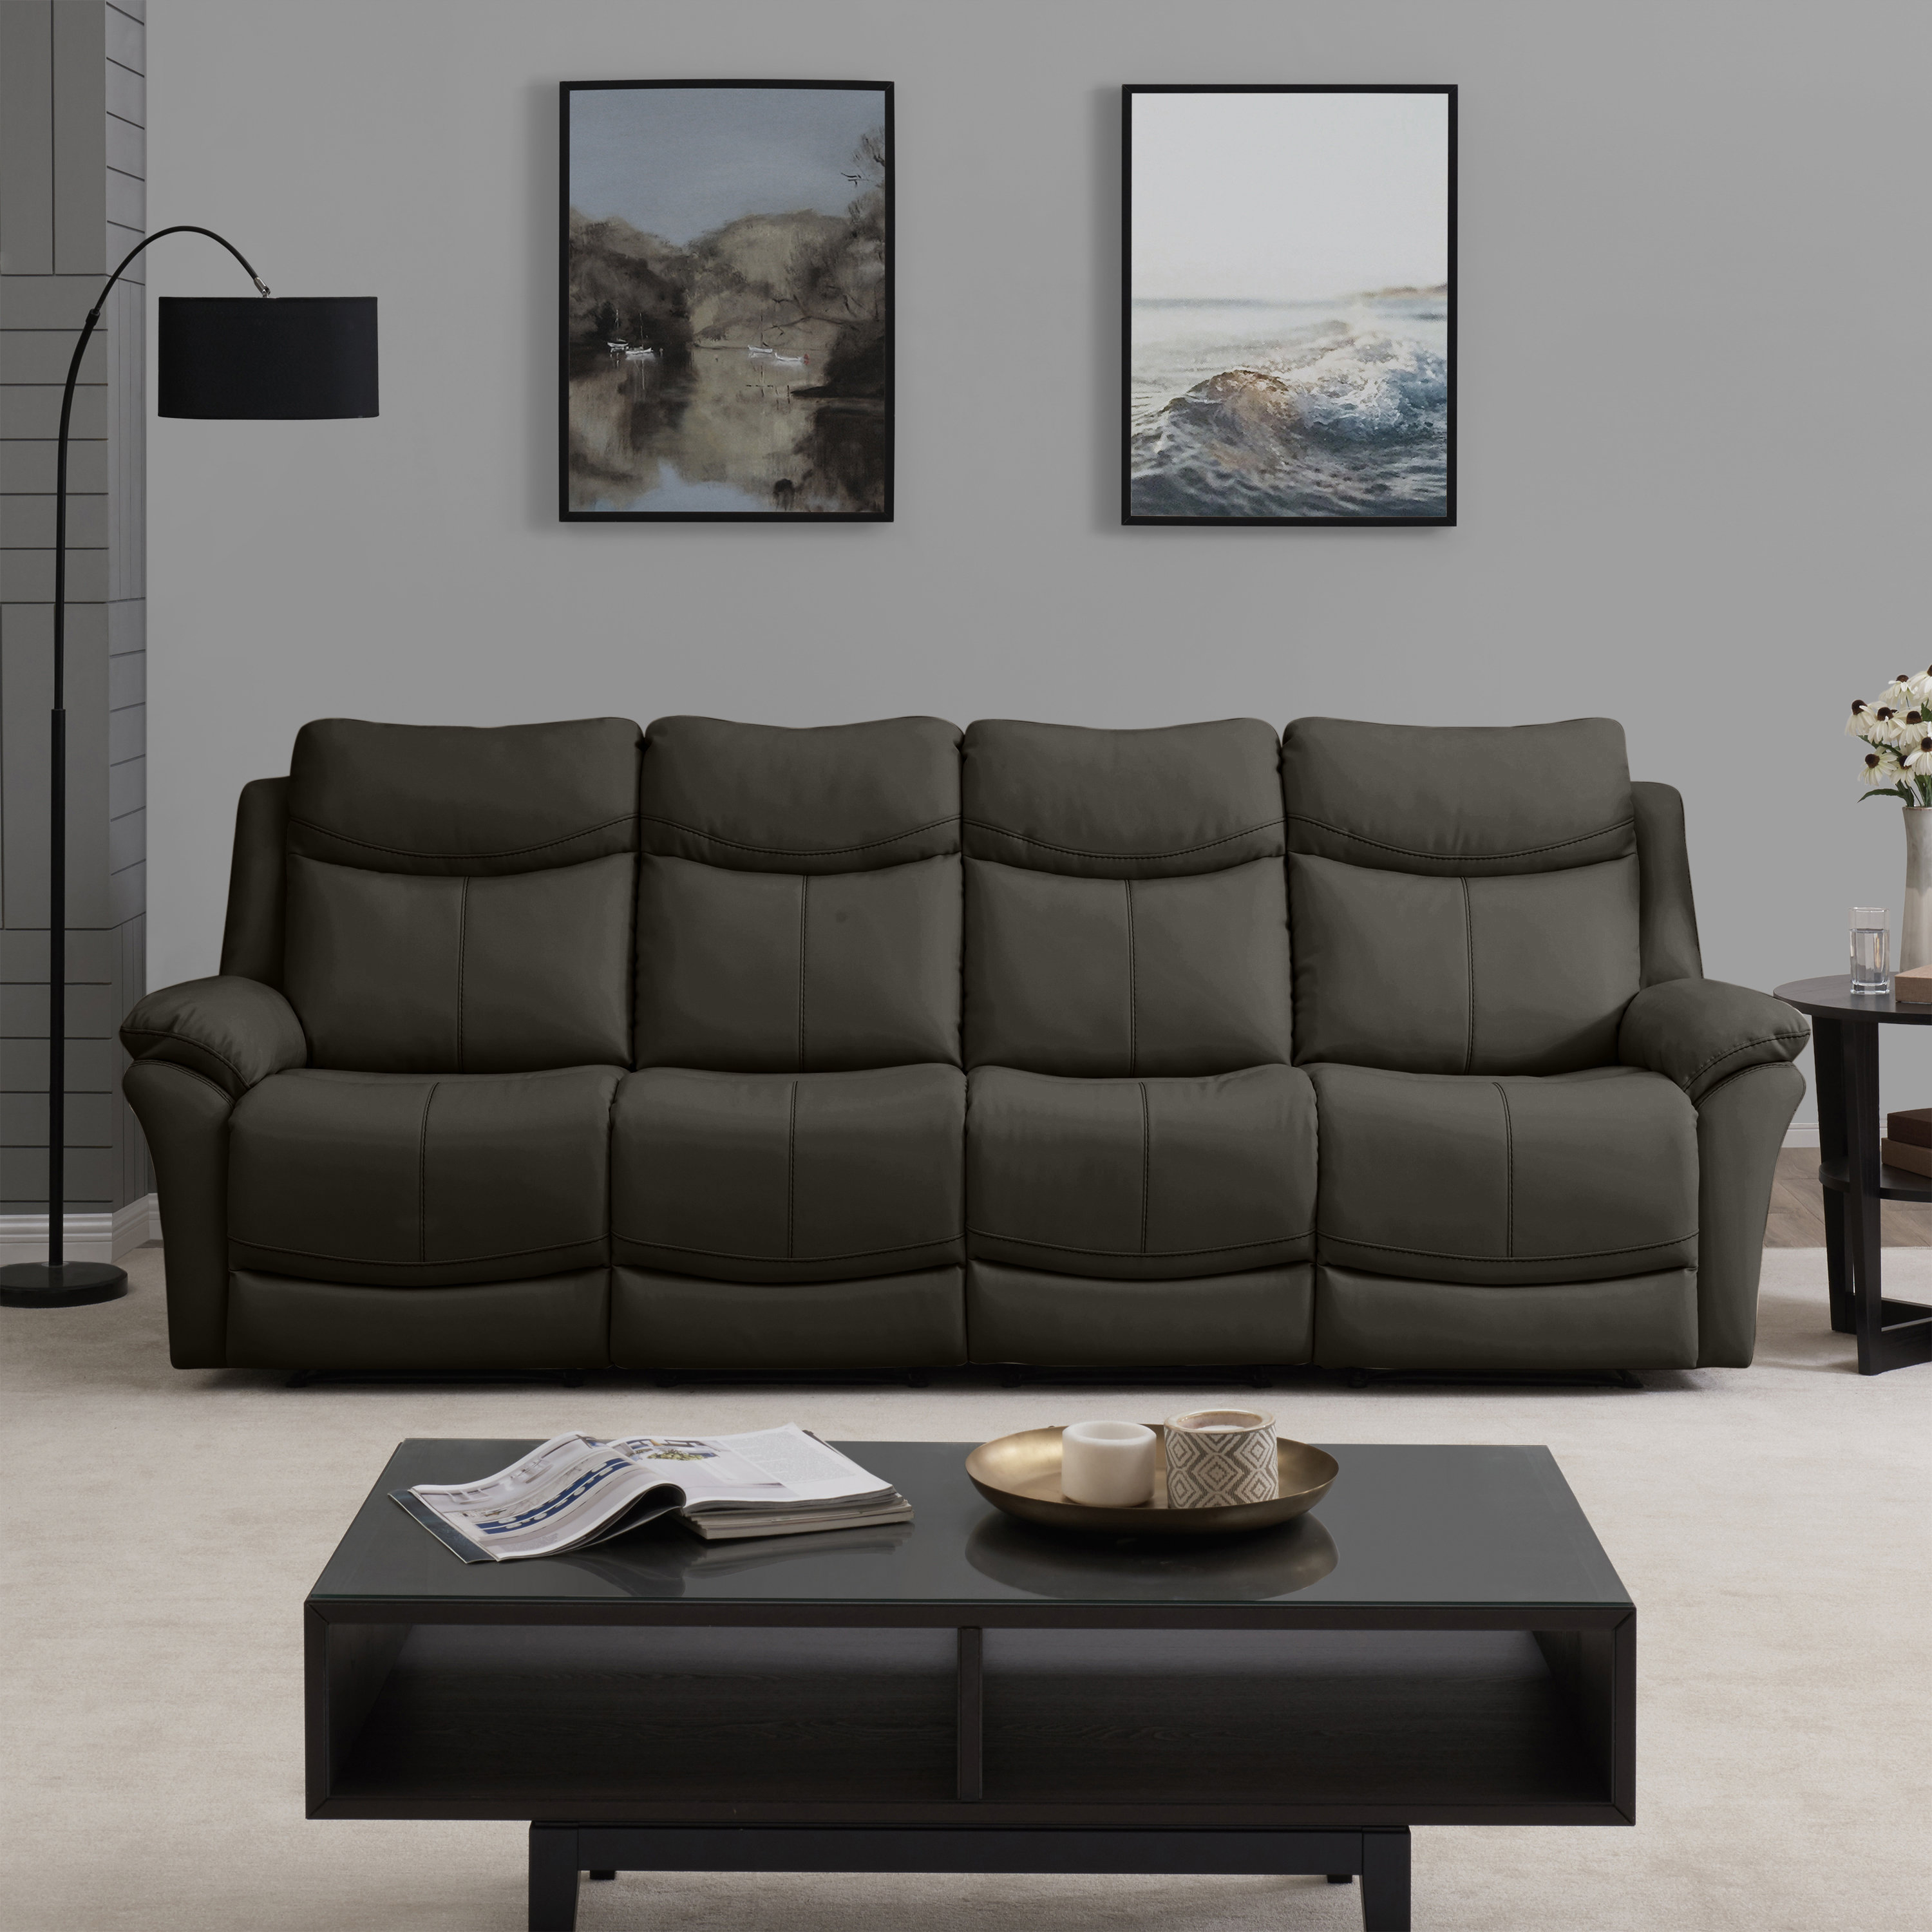 Sofas Sofa And Chair Set With Sectionals Under 500 And within Living Room Sets Under 500